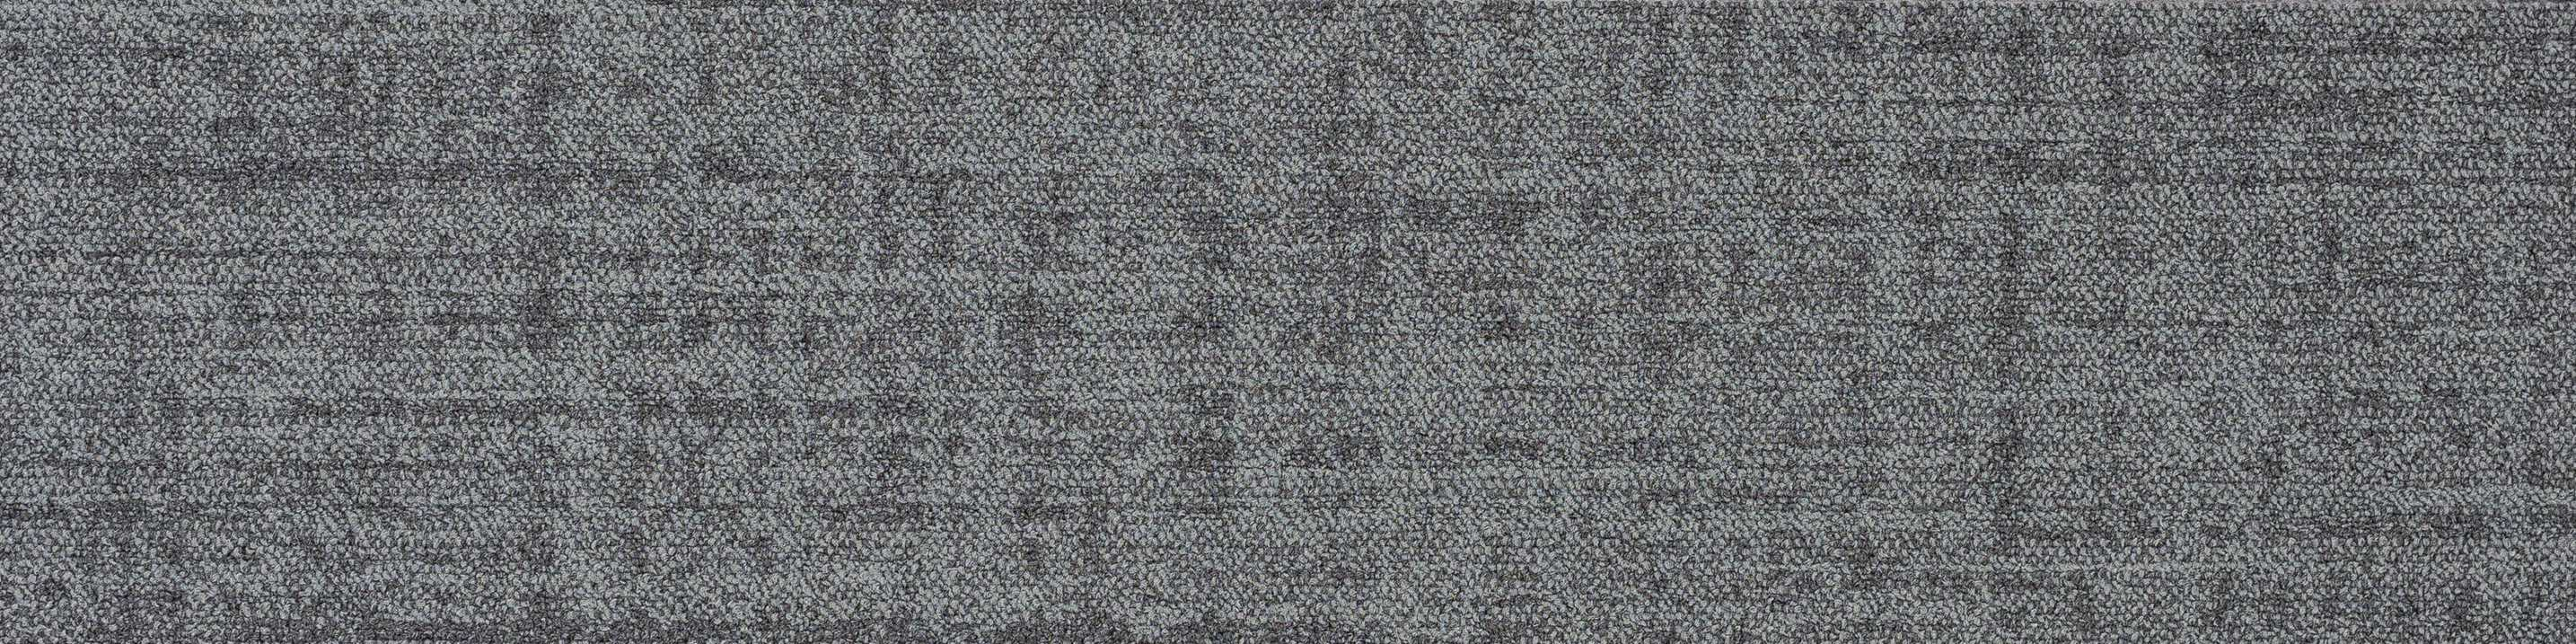 LIN03_GREY Collection - Premierfloor Lino